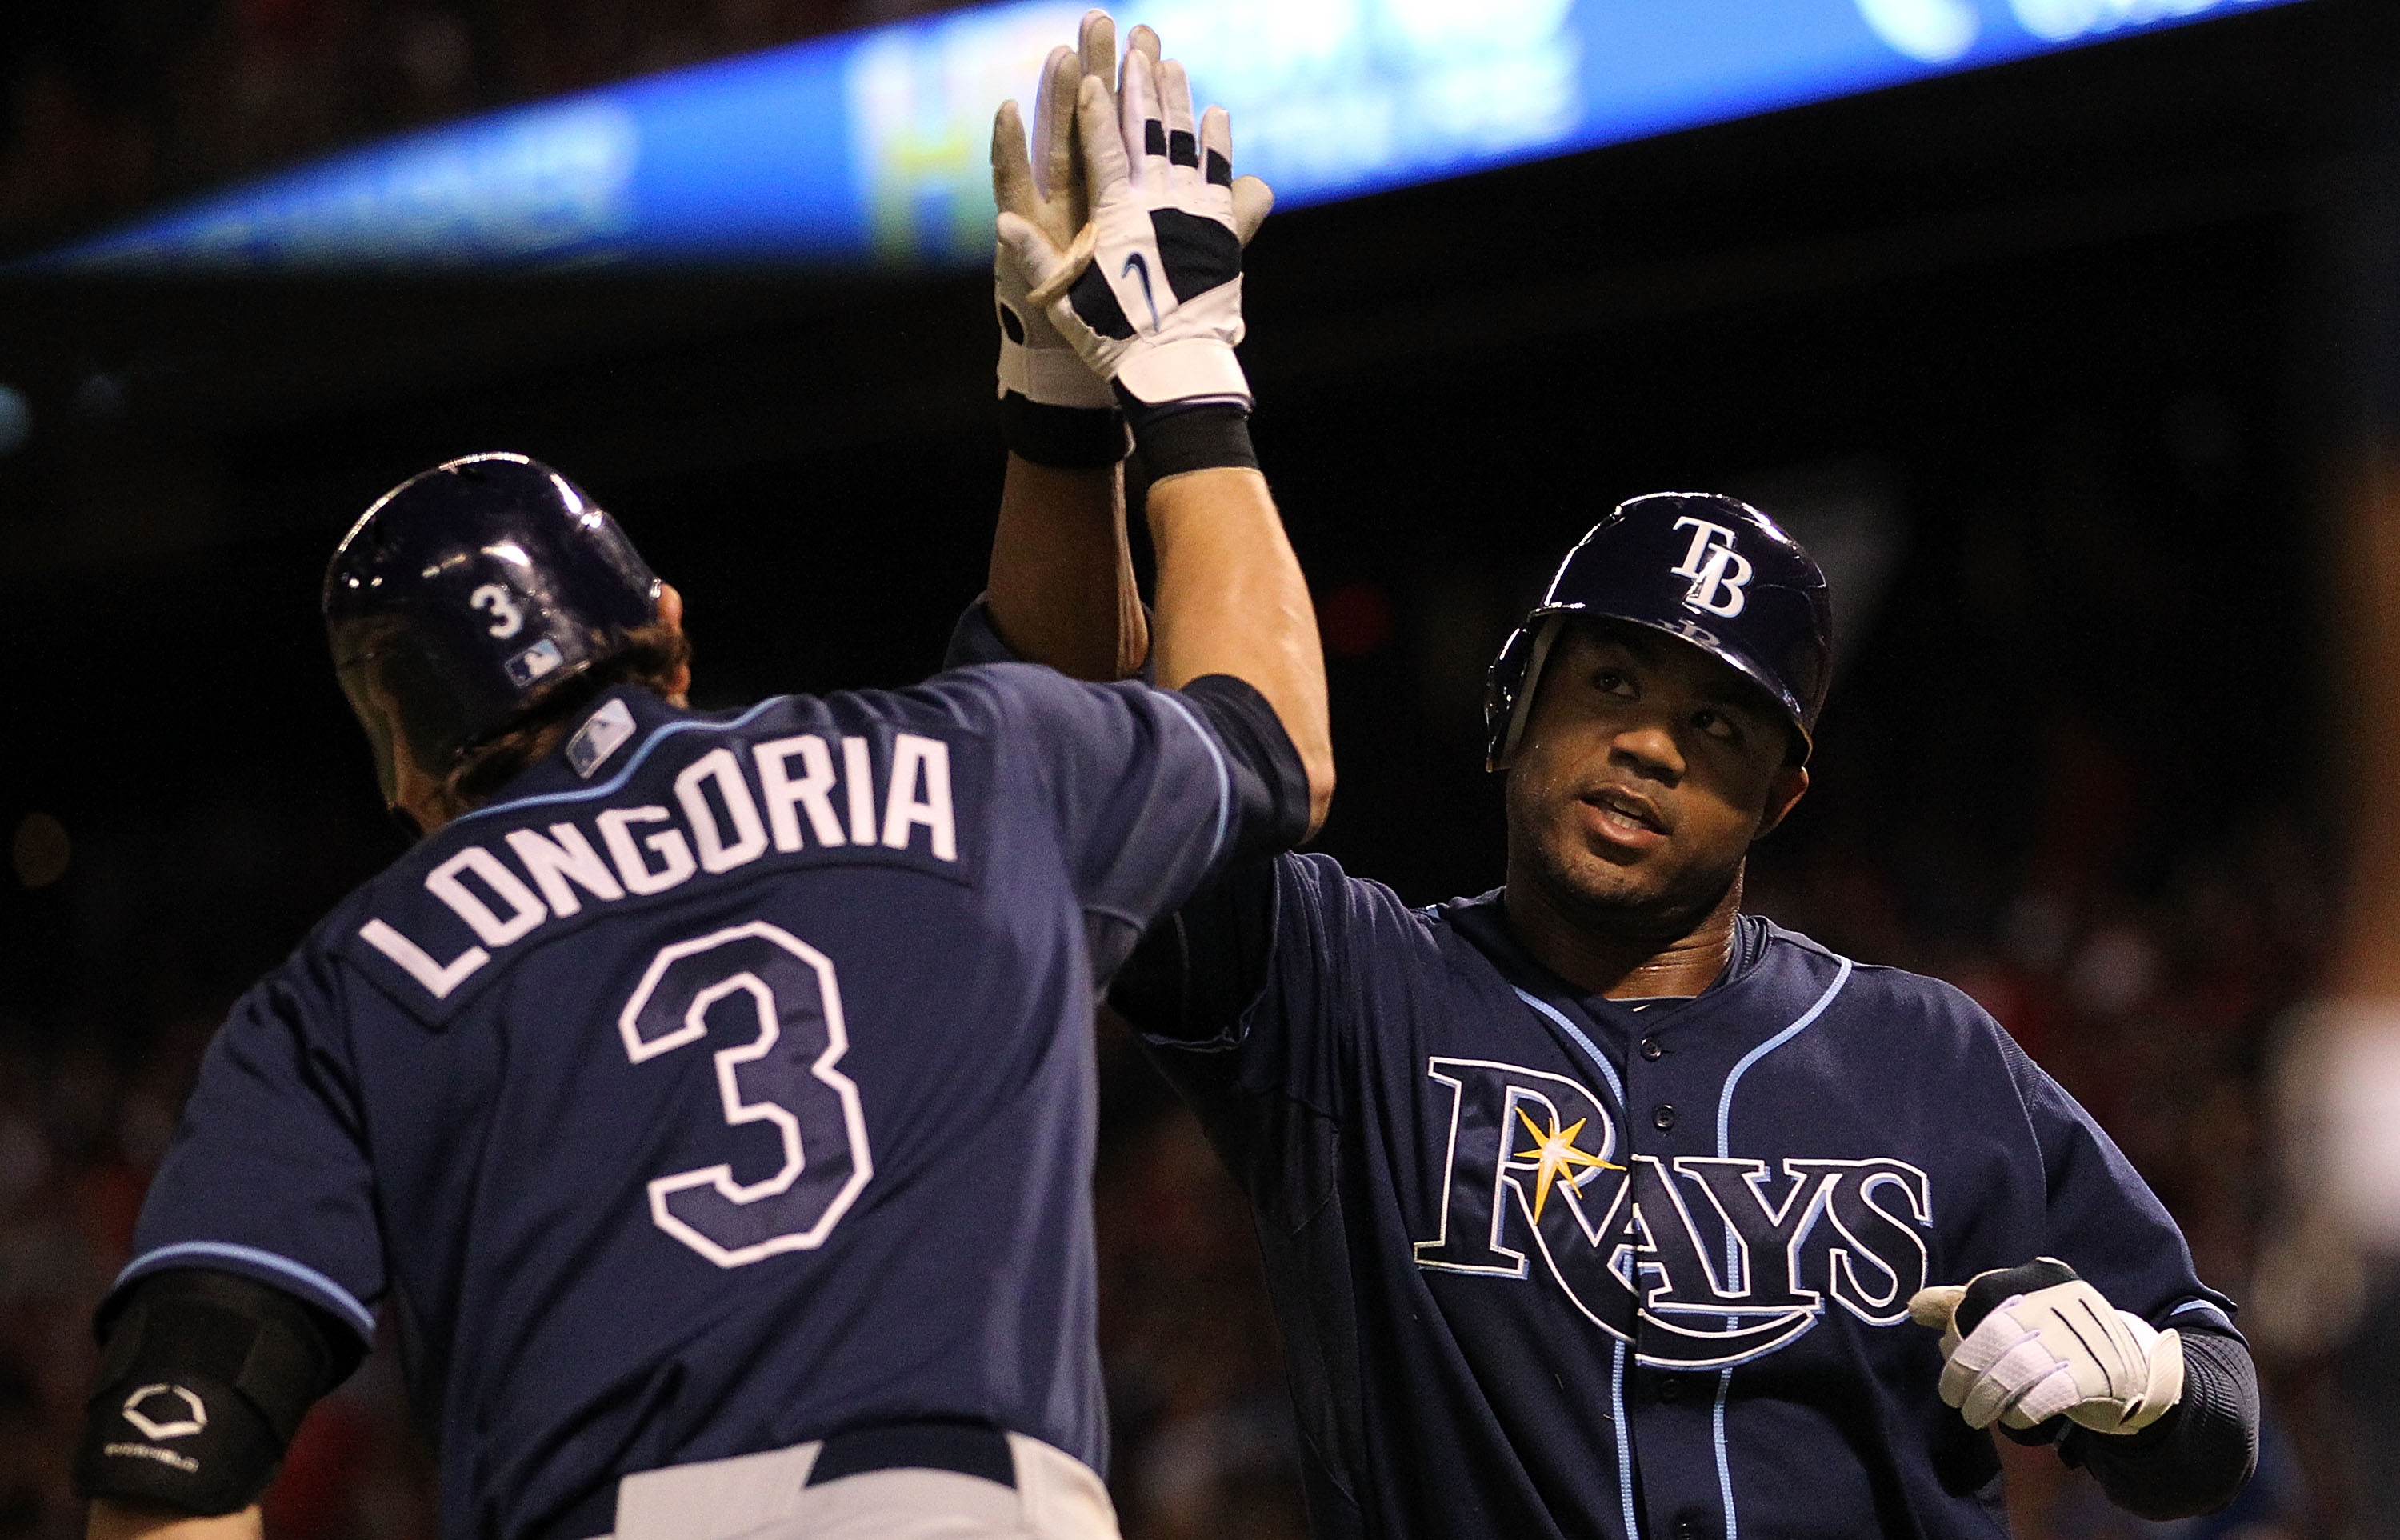 ARLINGTON, TX - OCTOBER 09:  Carl Crawford #13 of the Tampa Bay Rays celebtes a solo homerun with Evan Longoria #3 against the Texas Rangers in the 9th inning during game 3 of the ALDS at Rangers Ballpark in Arlington on October 9, 2010 in Arlington, Texa